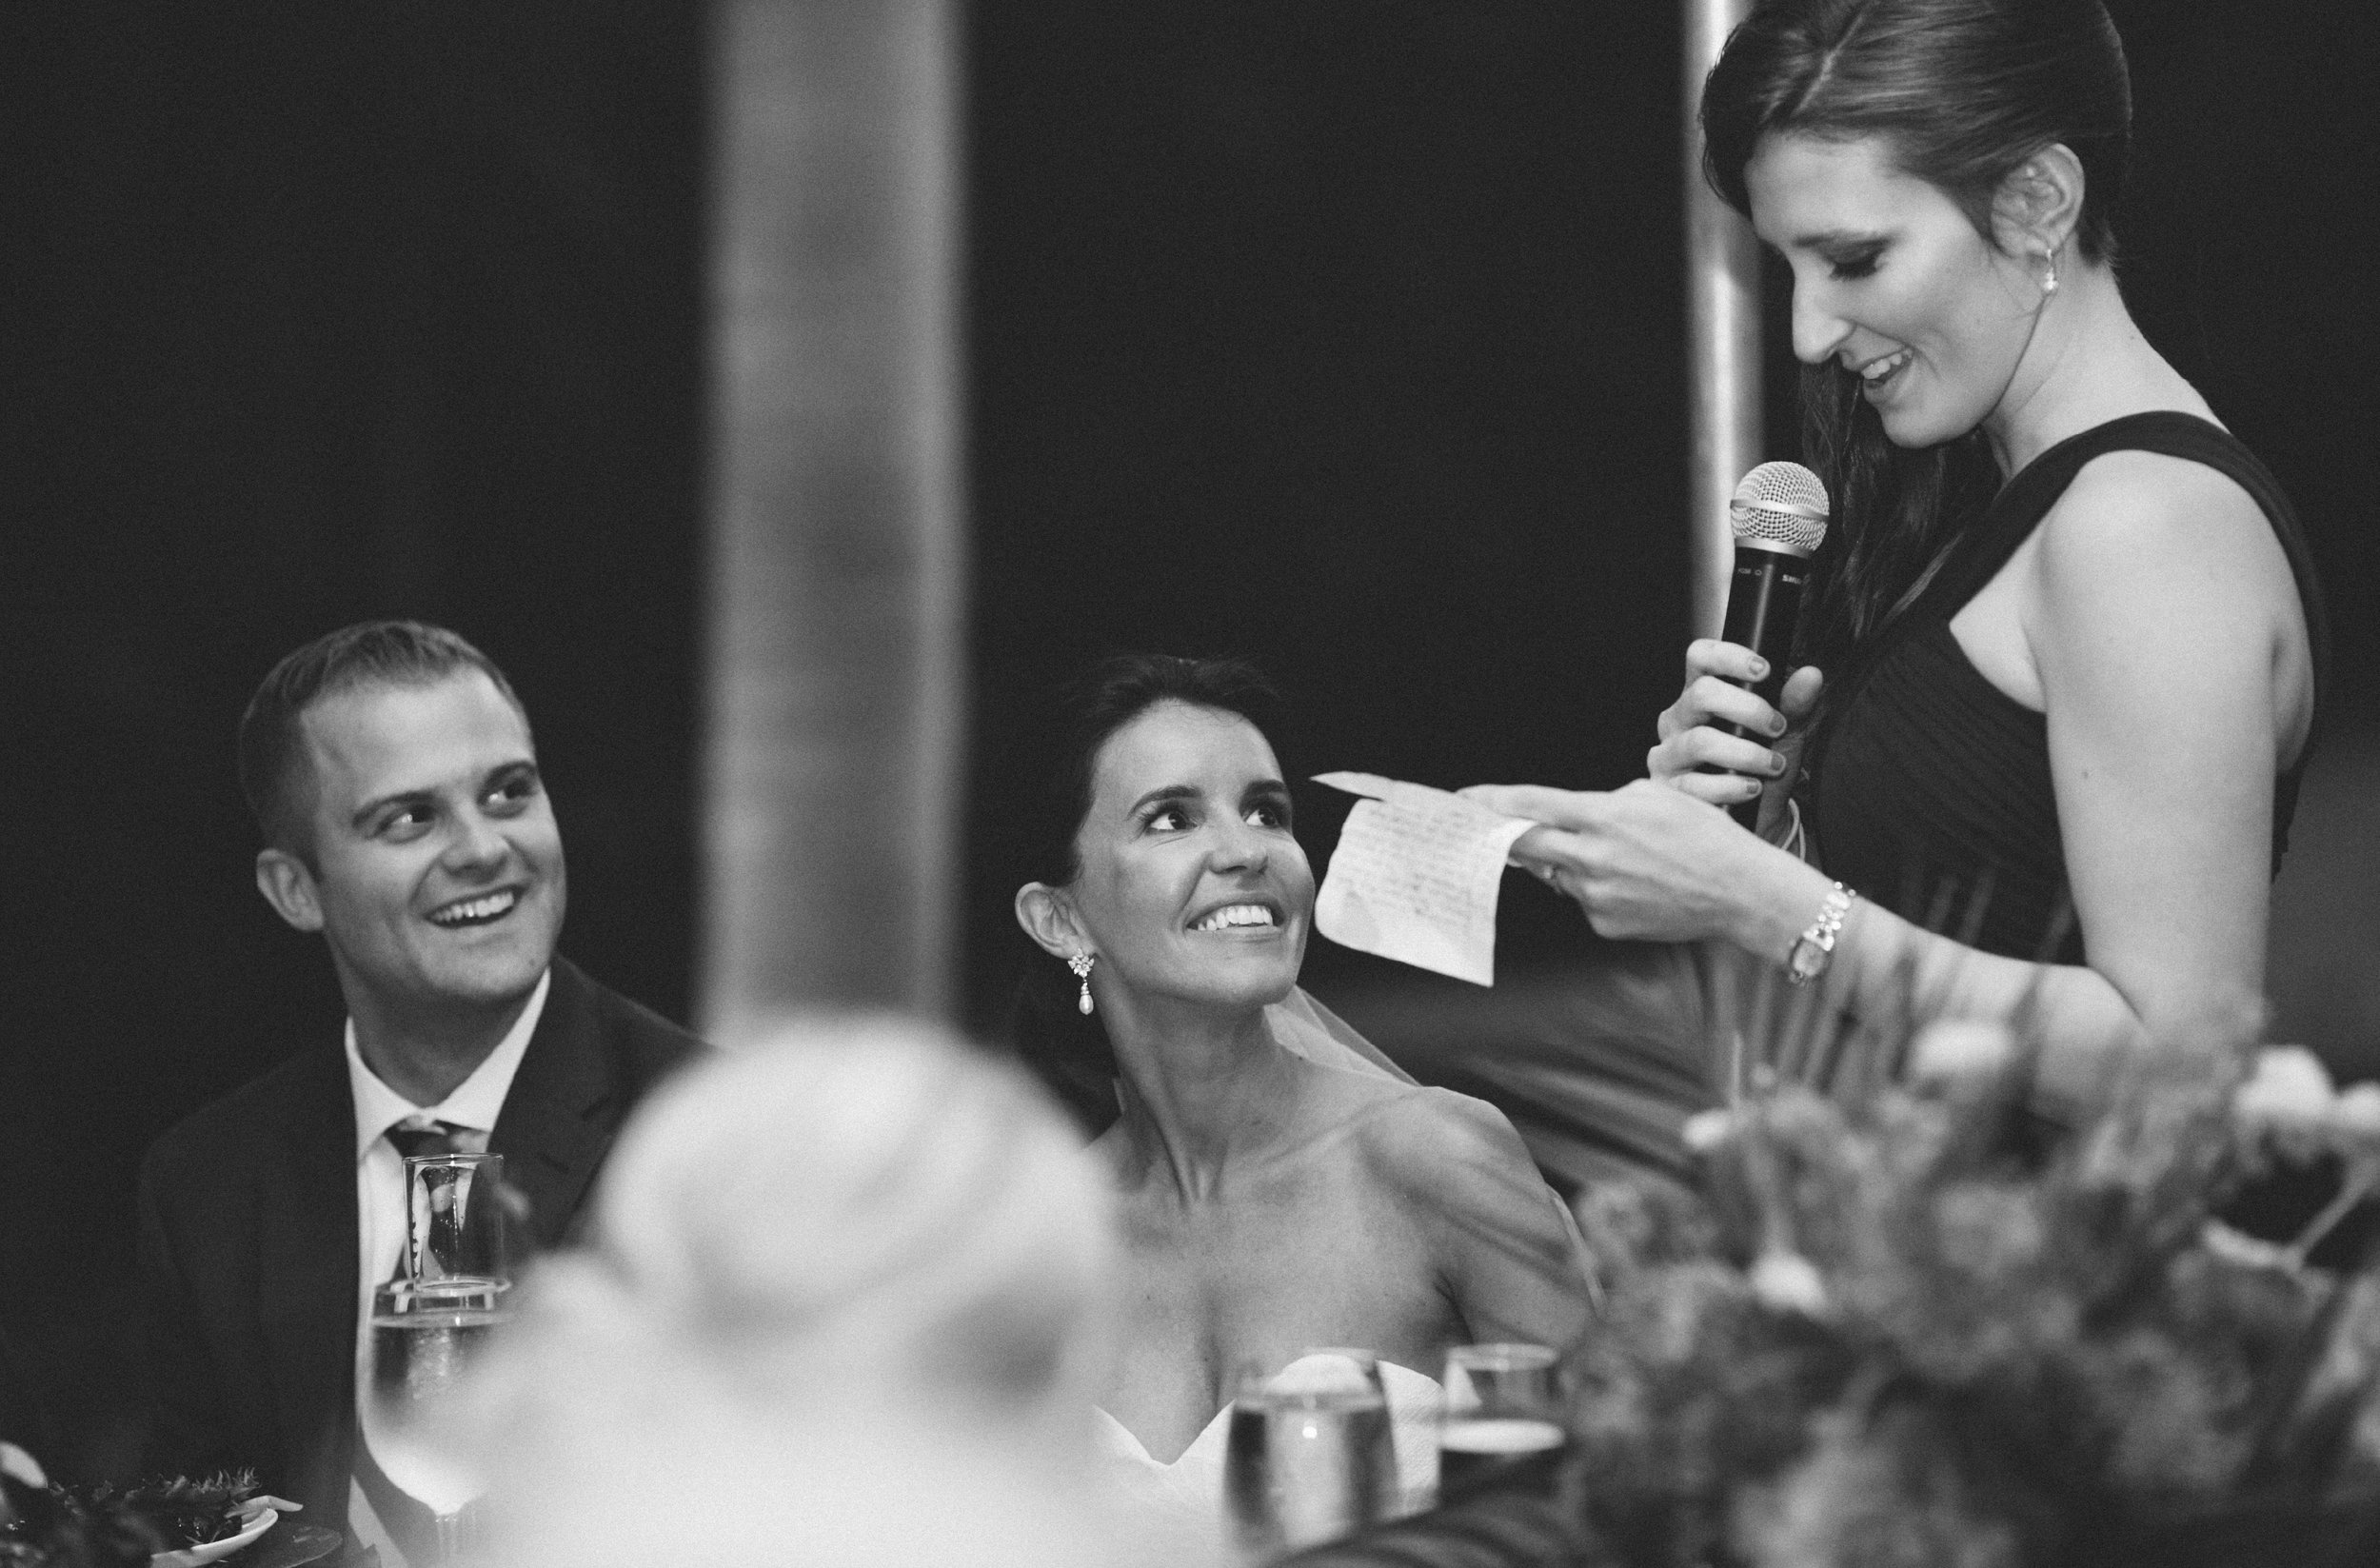 Heather + Greg's Wedding at the Bonnet House Ft Lauderdale72.jpg